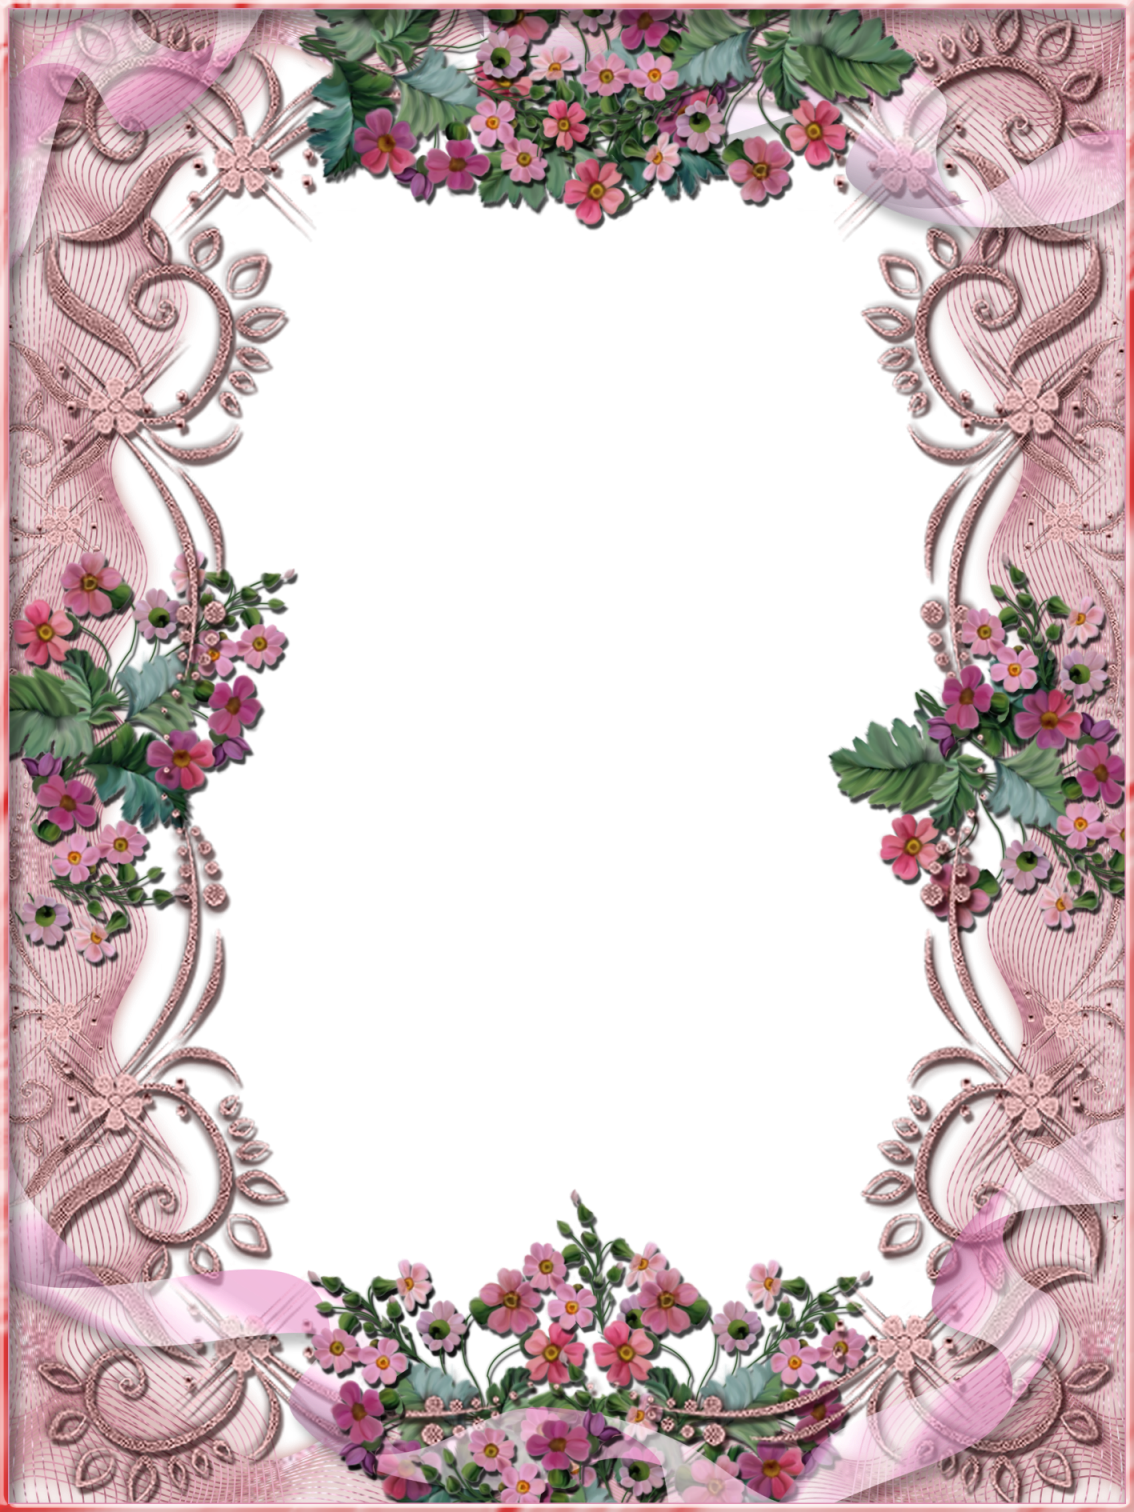 Transparent free flower clipart borders - Free Flower Frame For My Picture Download - Beautiful Big Frames